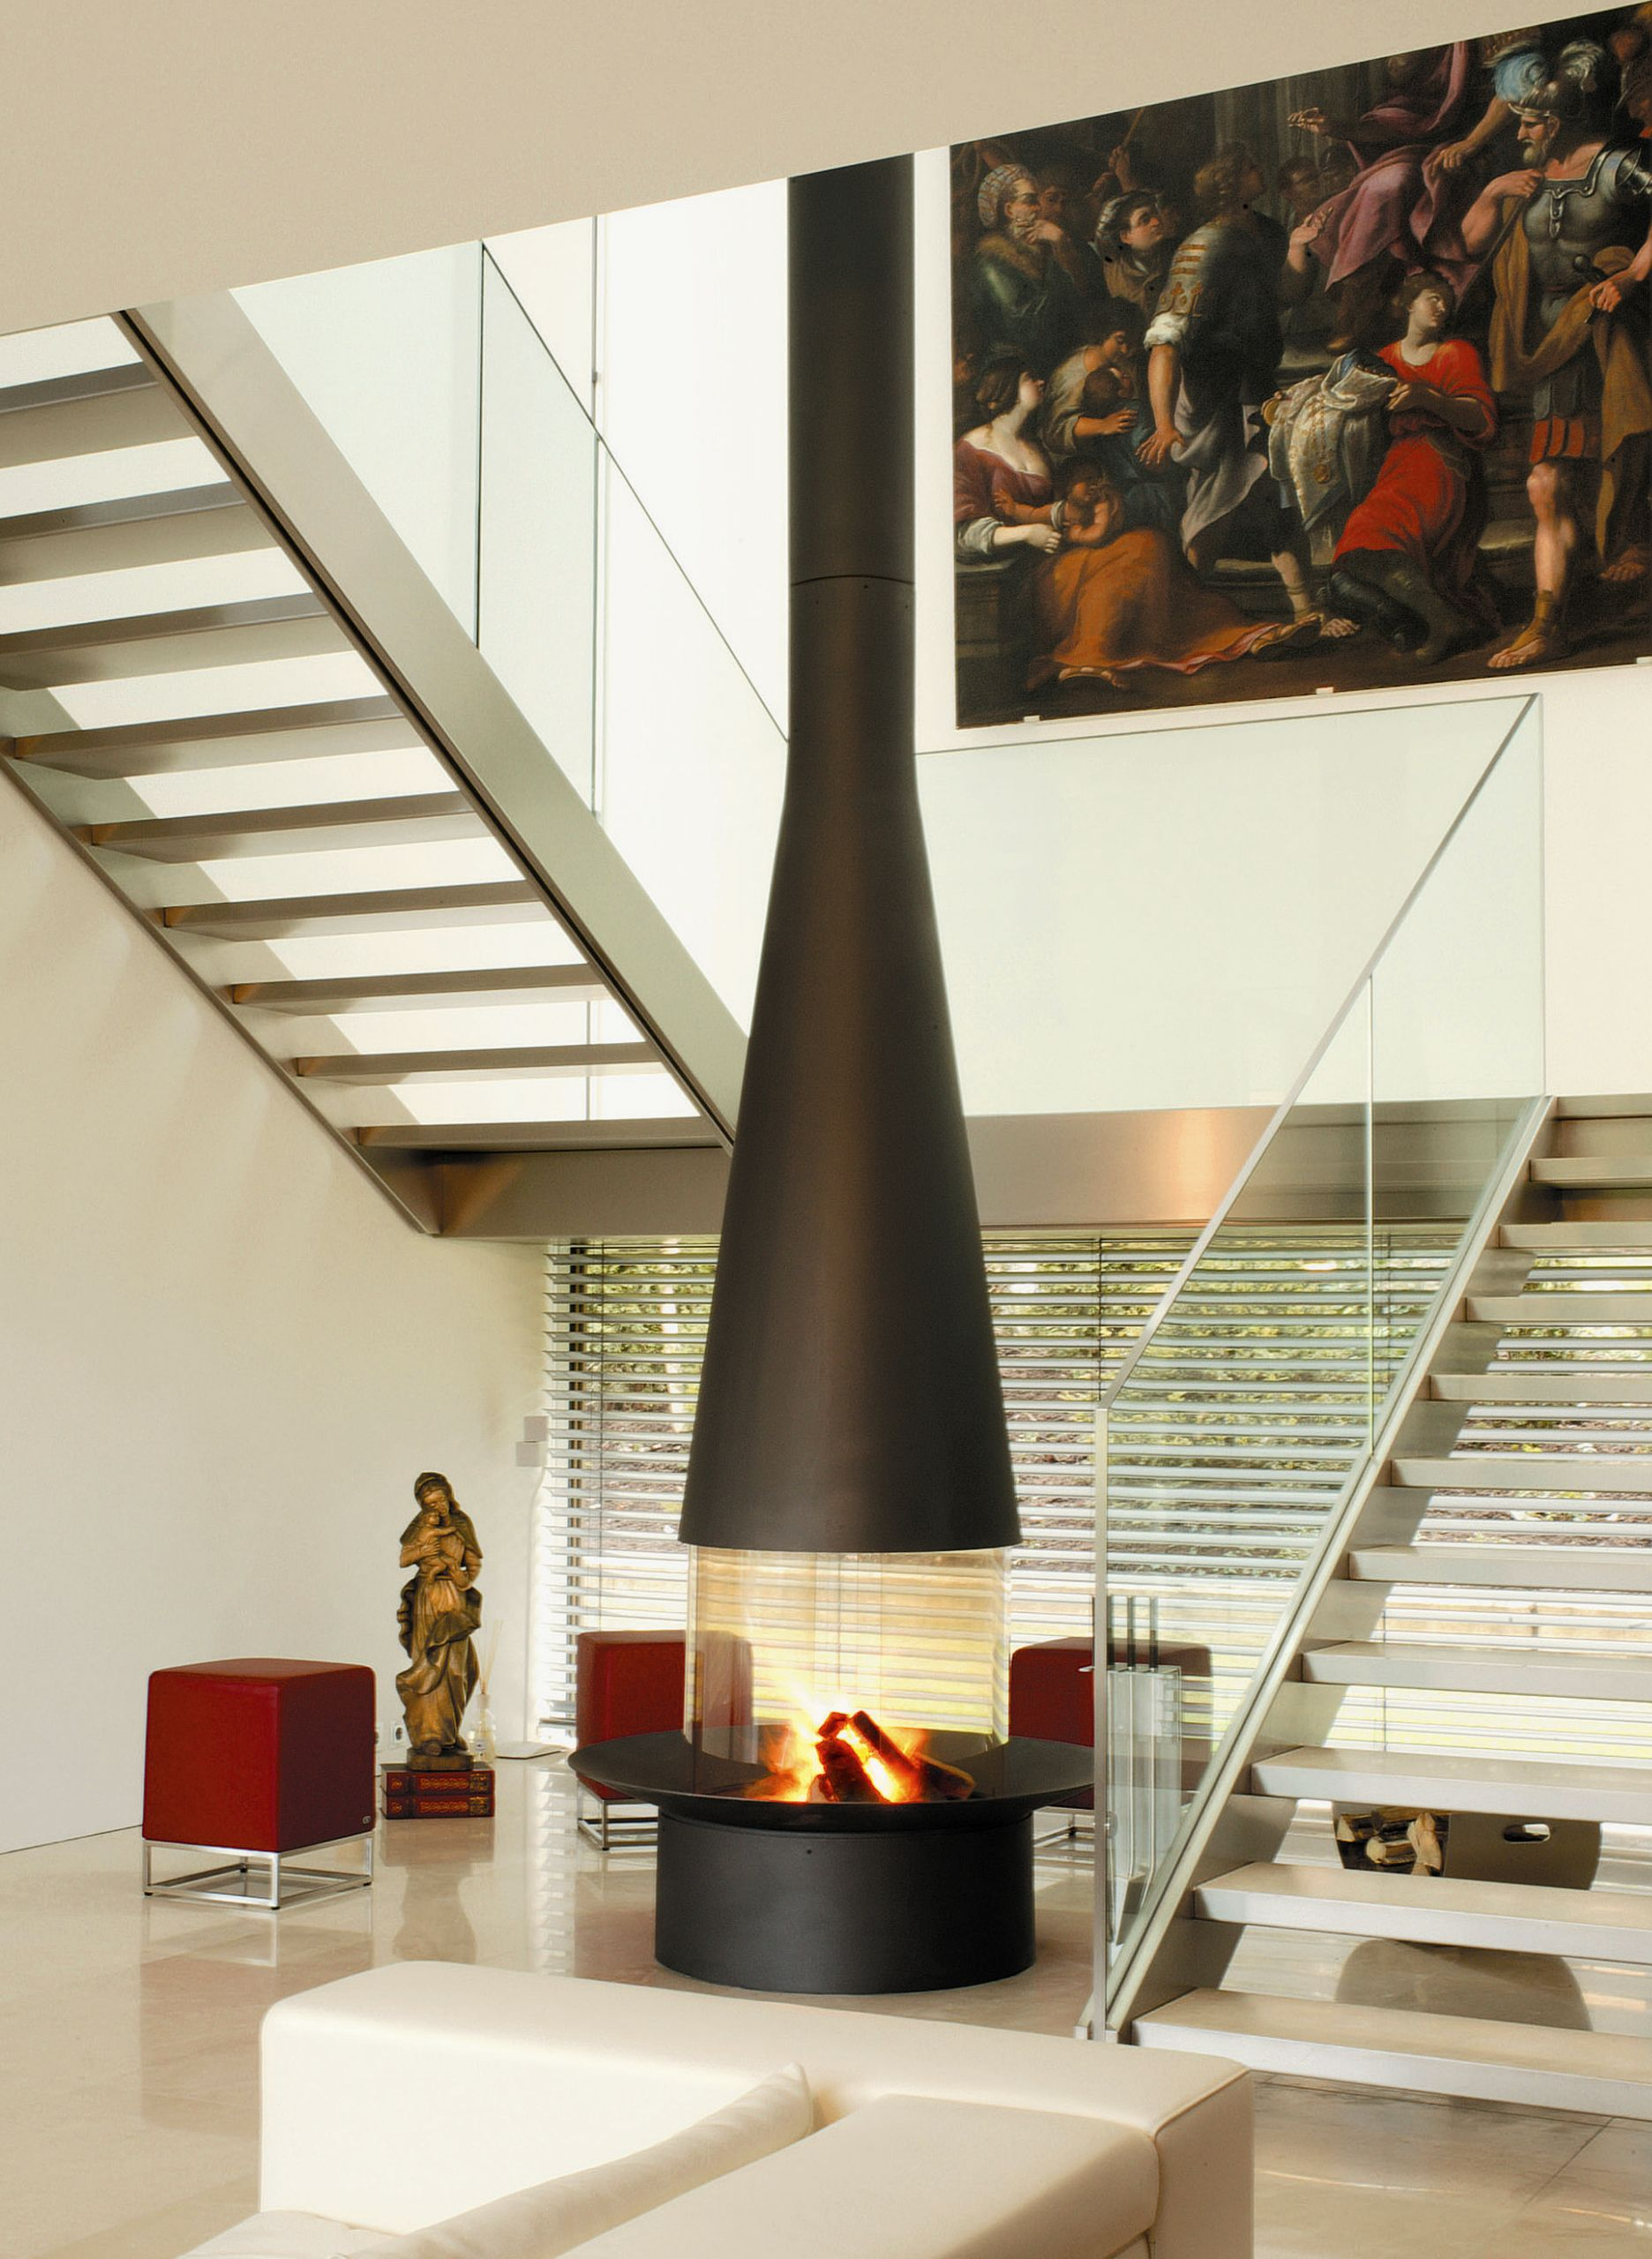 CENTRAL HANGING FIREPLACE FILIOFOCUS 2000 CENTRAL FILIOFOCUS COLLECTION BY  FOCUS | DESIGN DOMINIQUE IMBERT